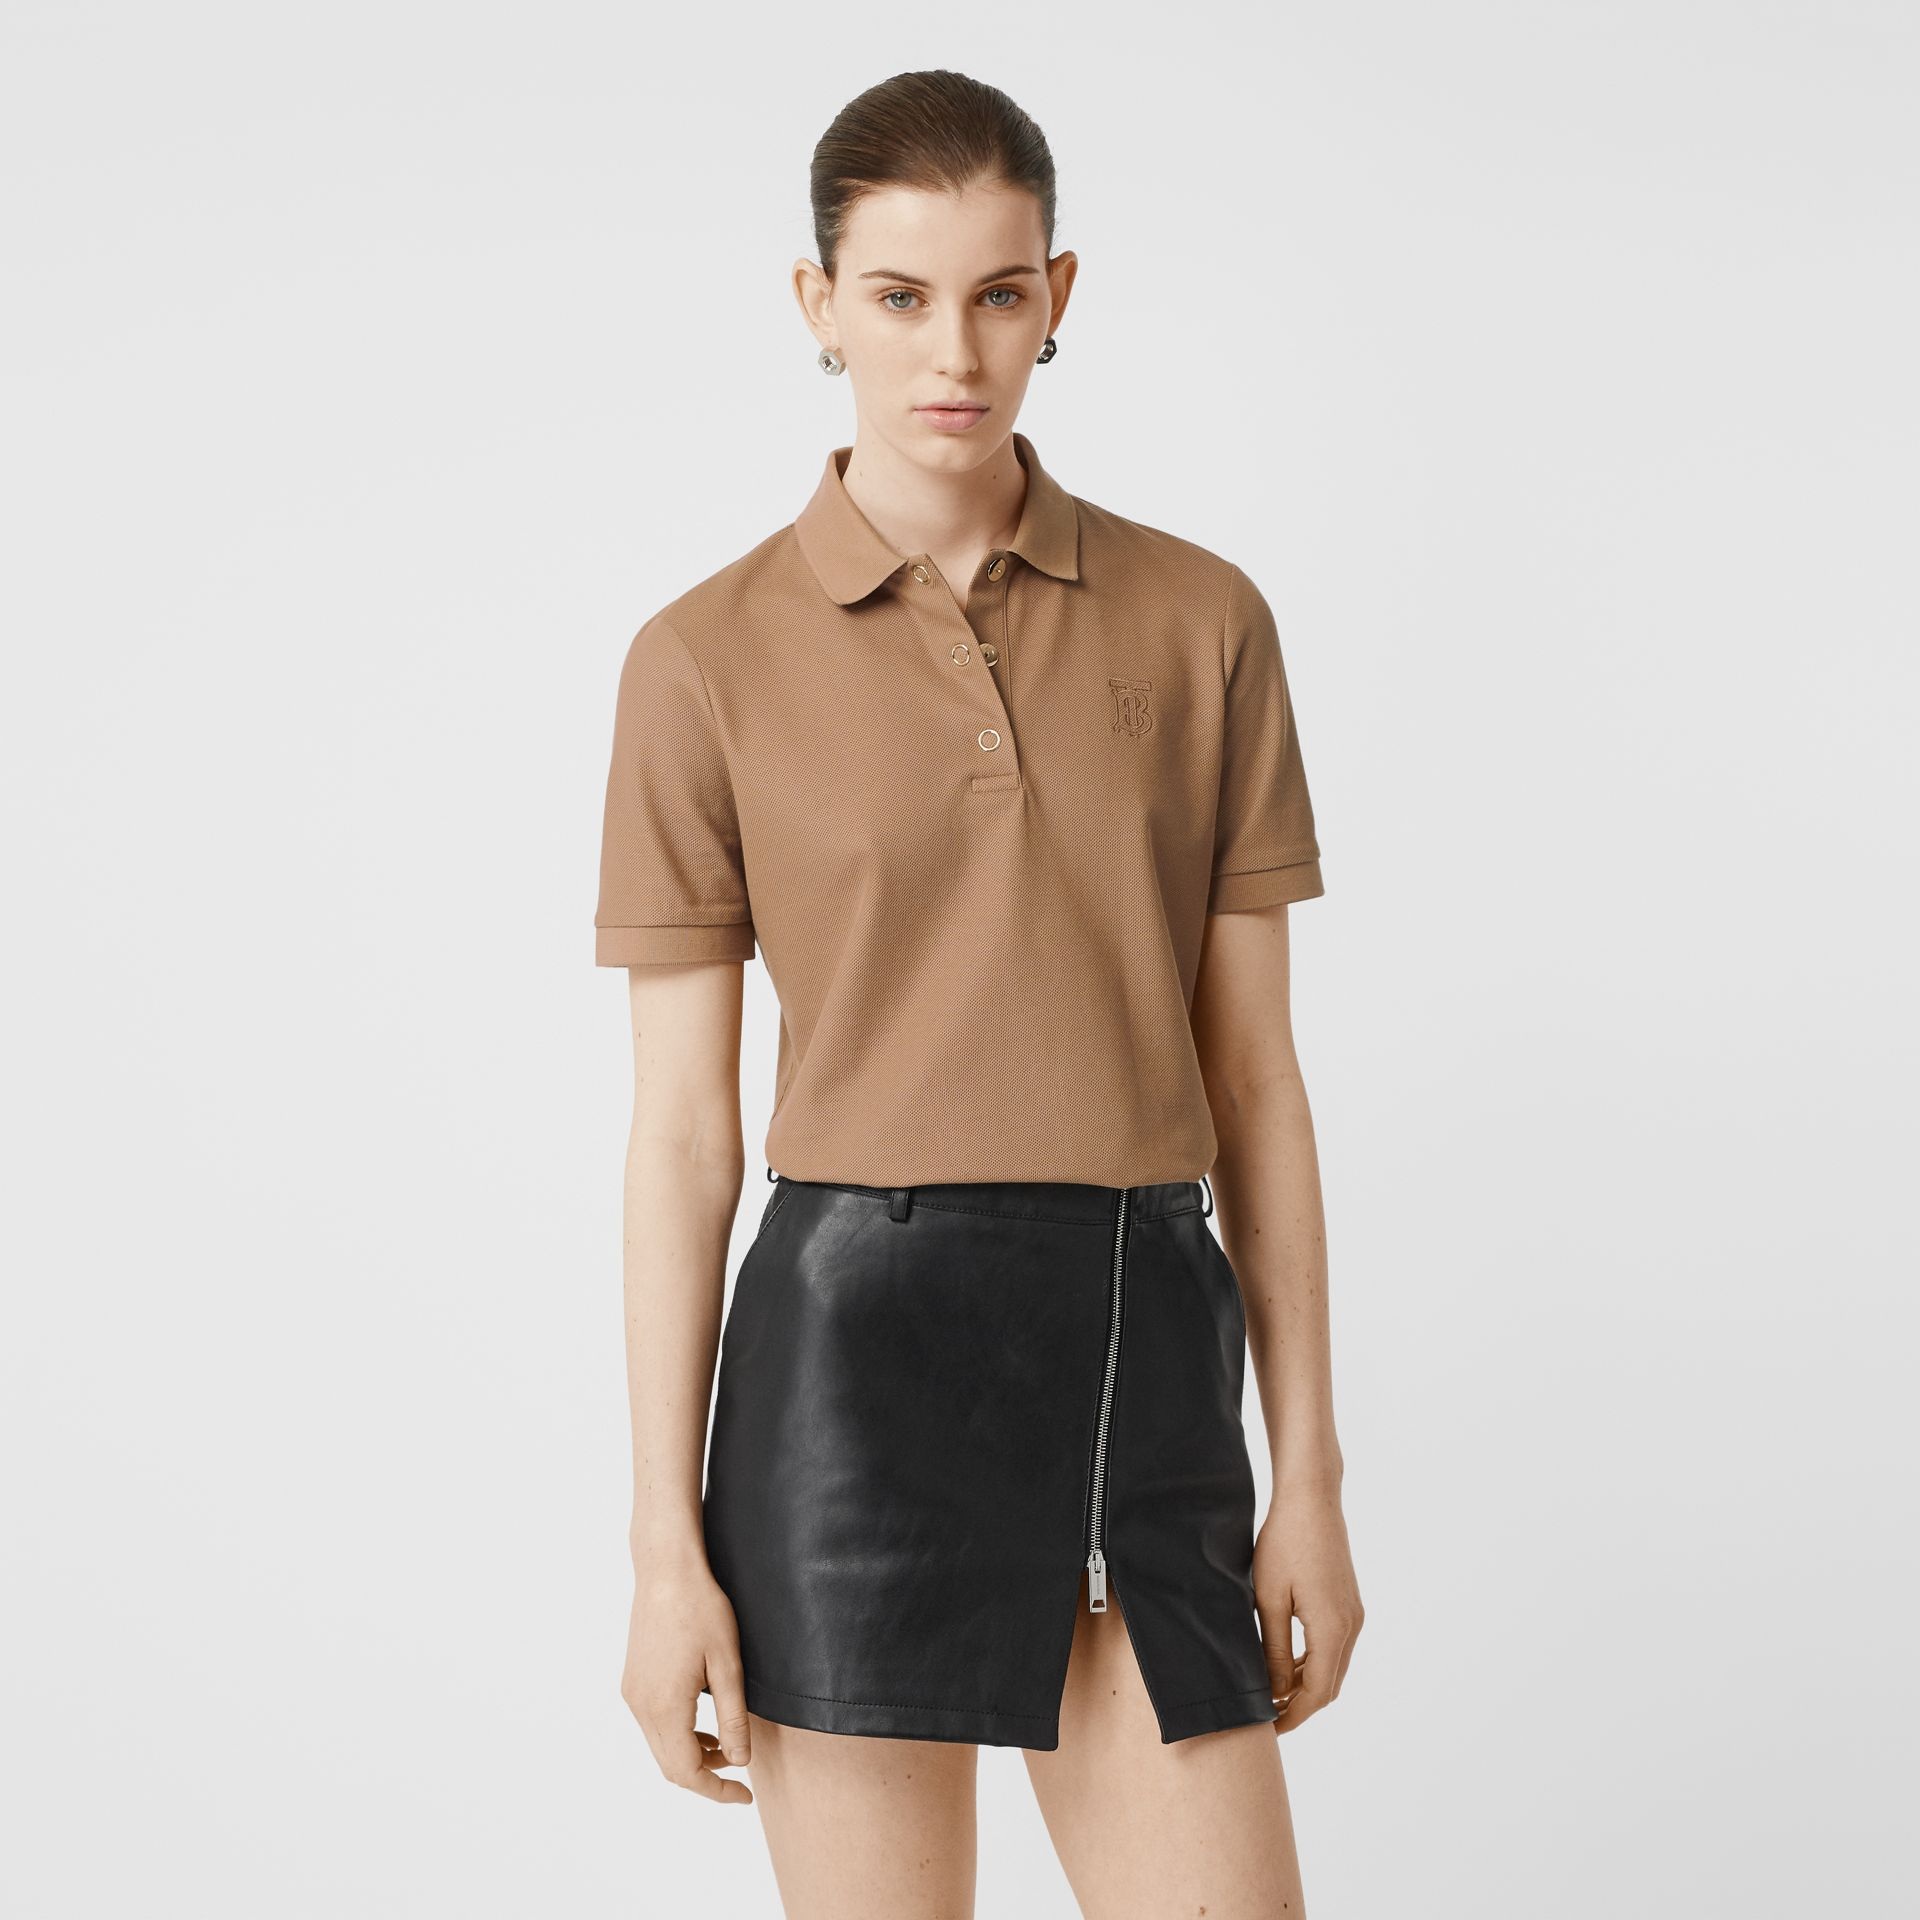 Monogram Motif Cotton Piqué Polo Shirt in Camel - Women | Burberry - gallery image 4